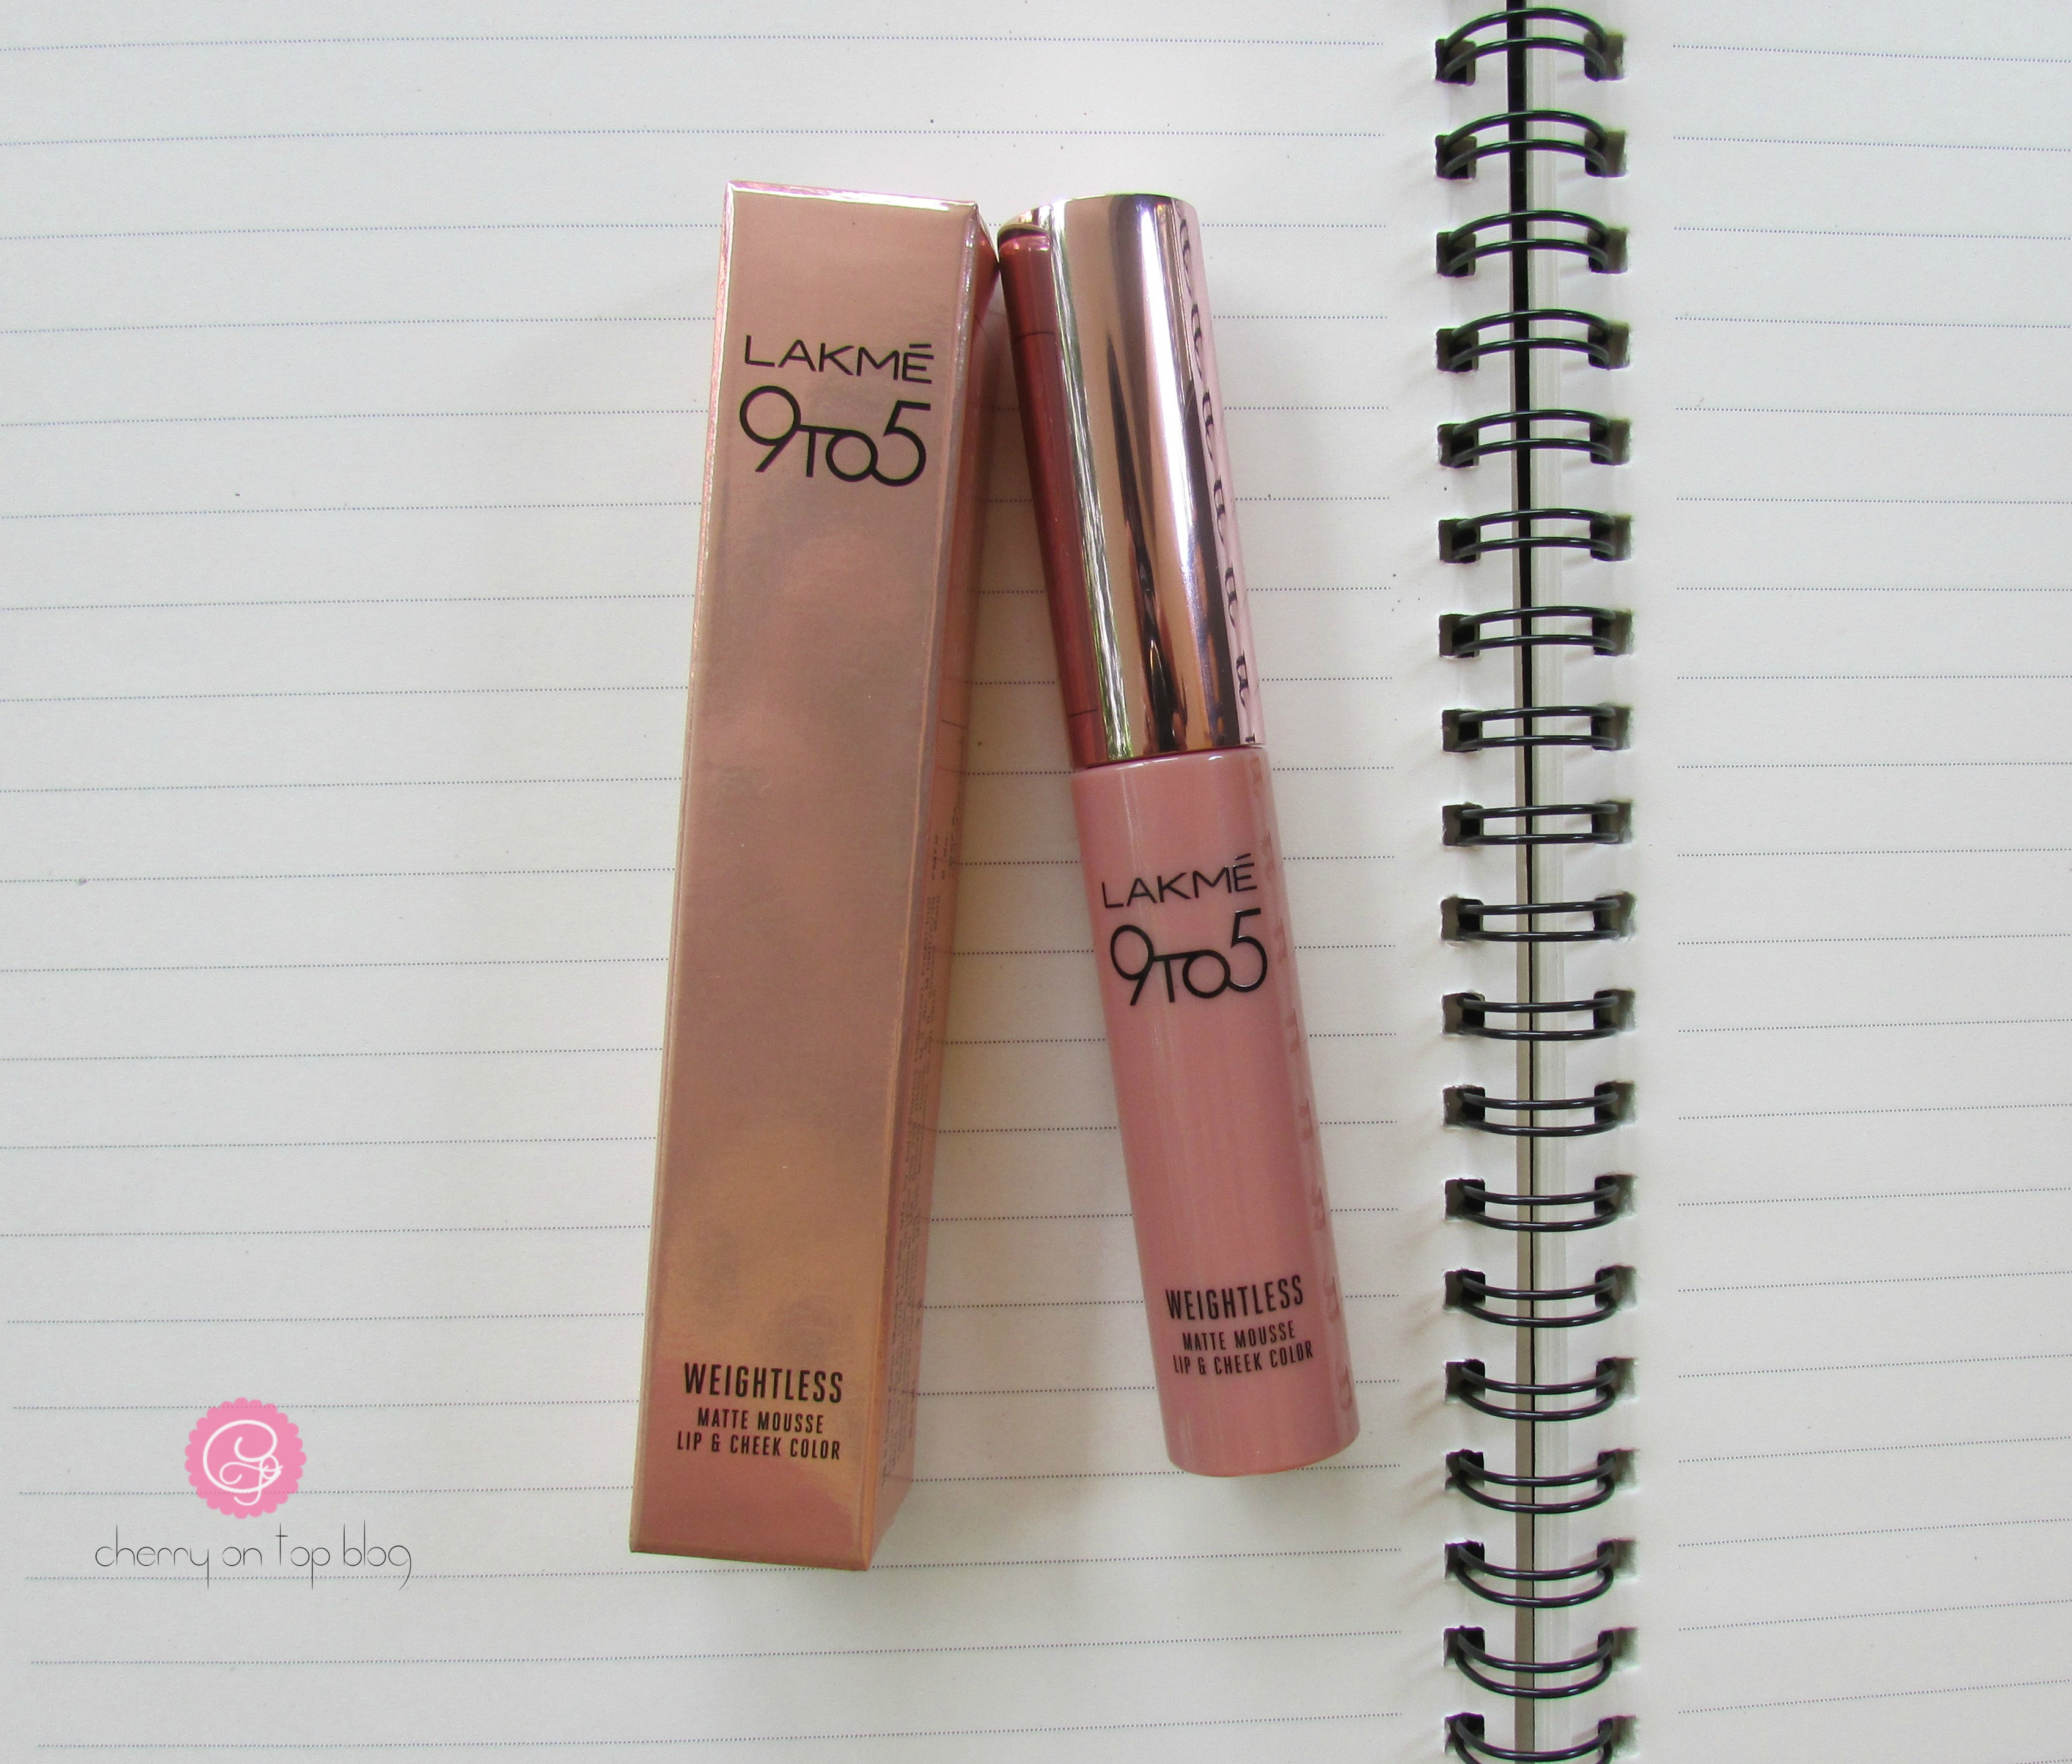 Lakme 9to5 Weightless Matte Mousse Lip & Cheek Color Burgundy Lush Review  Cherry On Top